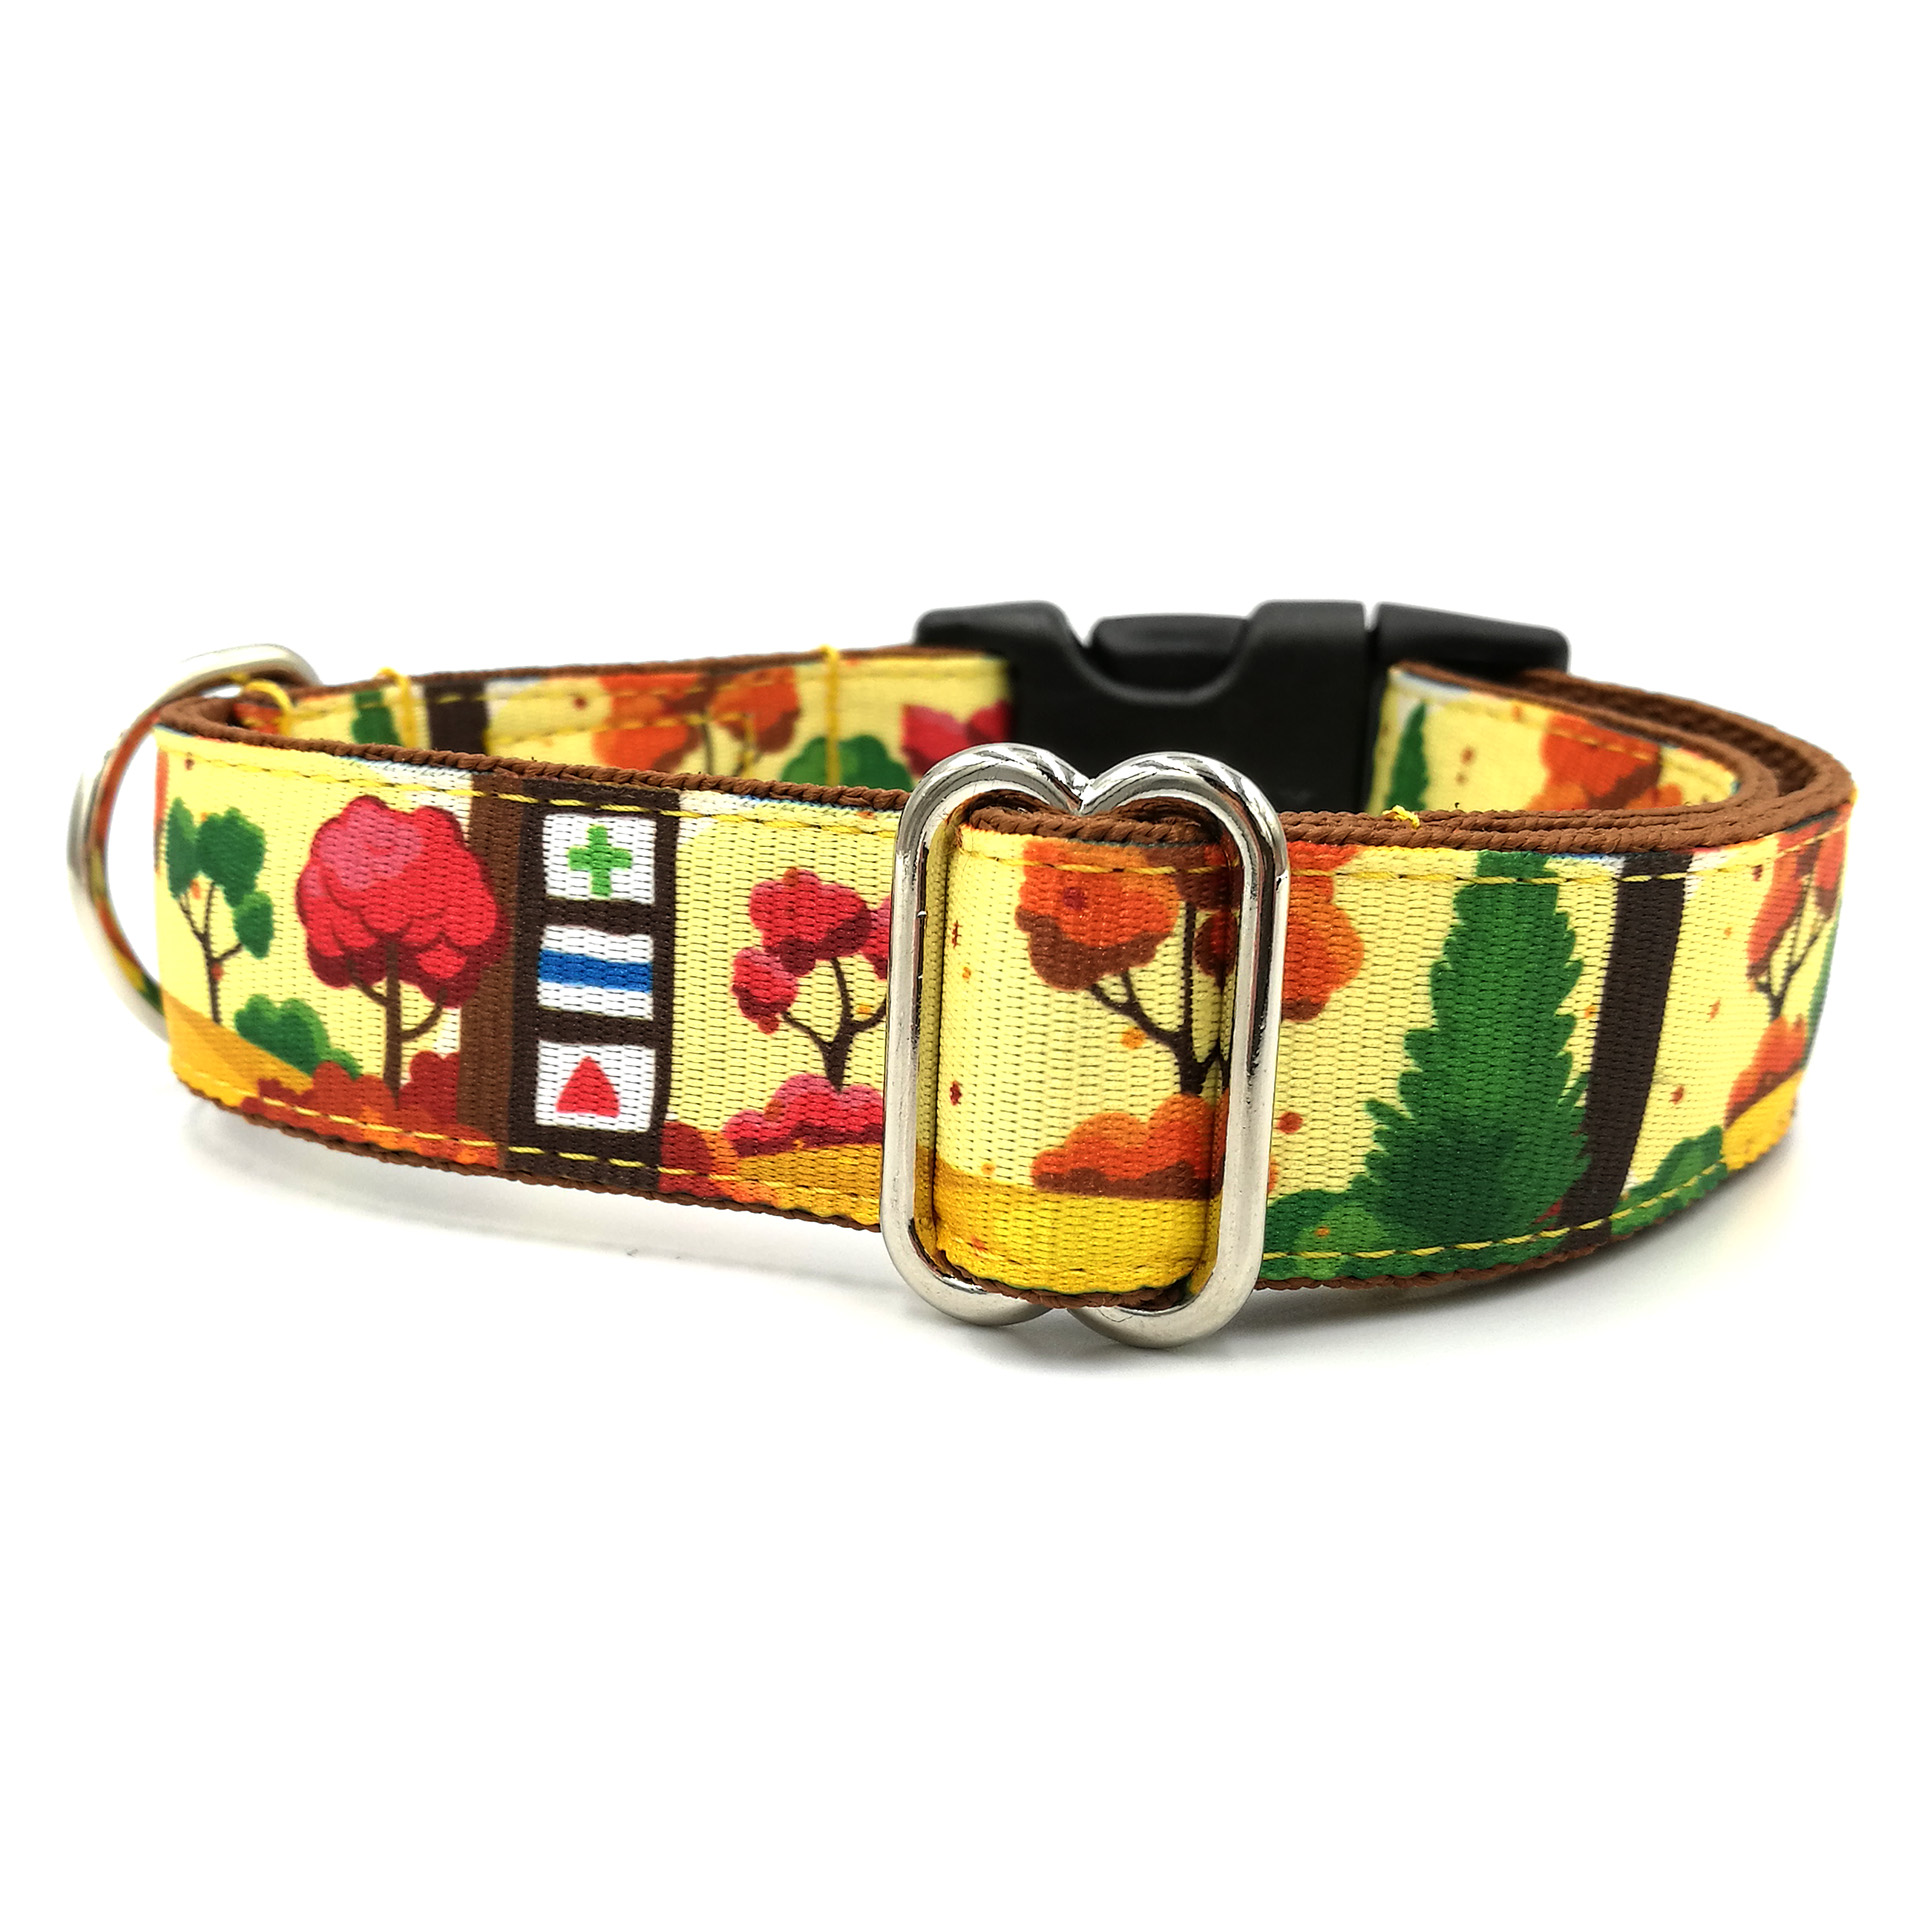 Hiking dog collar